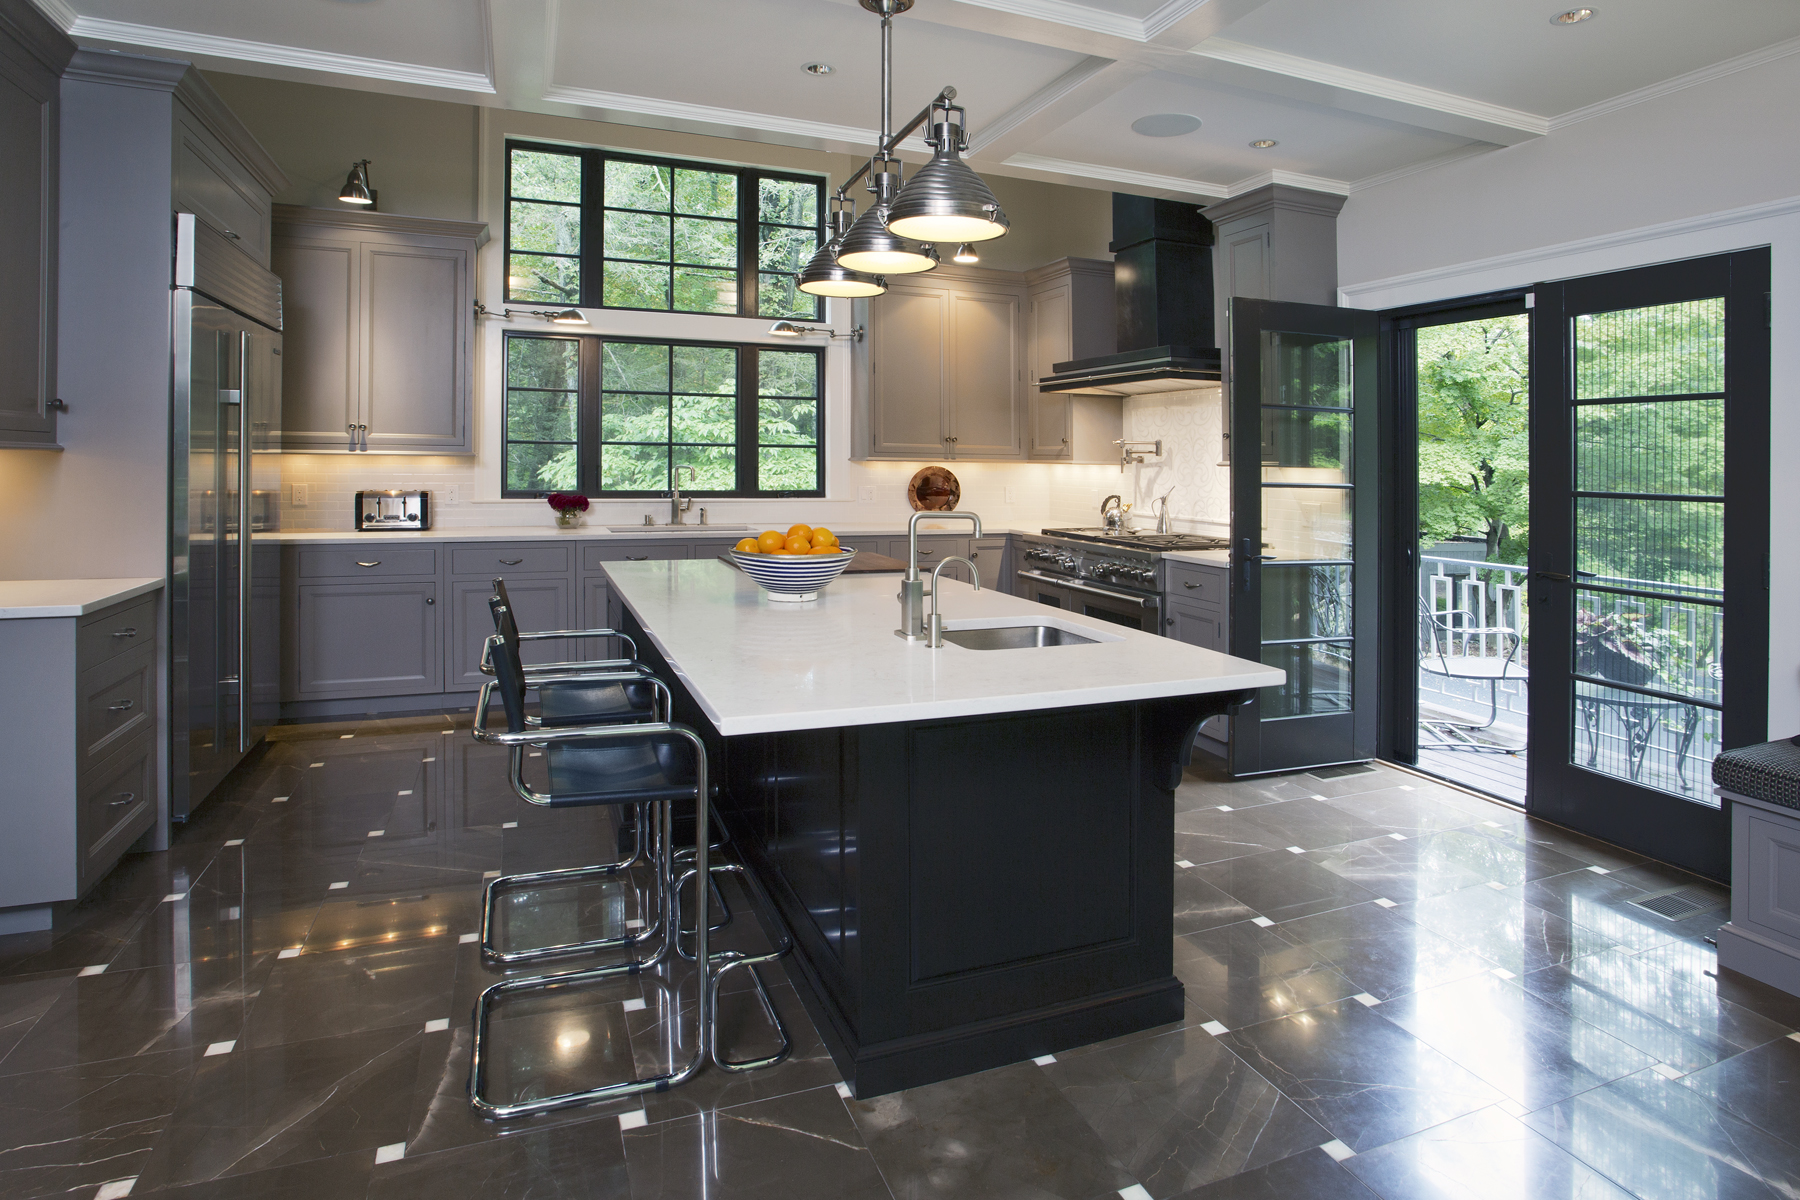 Traditional kitchen with modern accents is outfitted with fully custom cabinets from Bilotta and Wood-Mode. gray painted cabinets are paired with an island with cherry cabinet with a stain. Glass paneled patio doors open out to patio seating. Design by Paula Greer, CKD of Bilotta Kitchens.